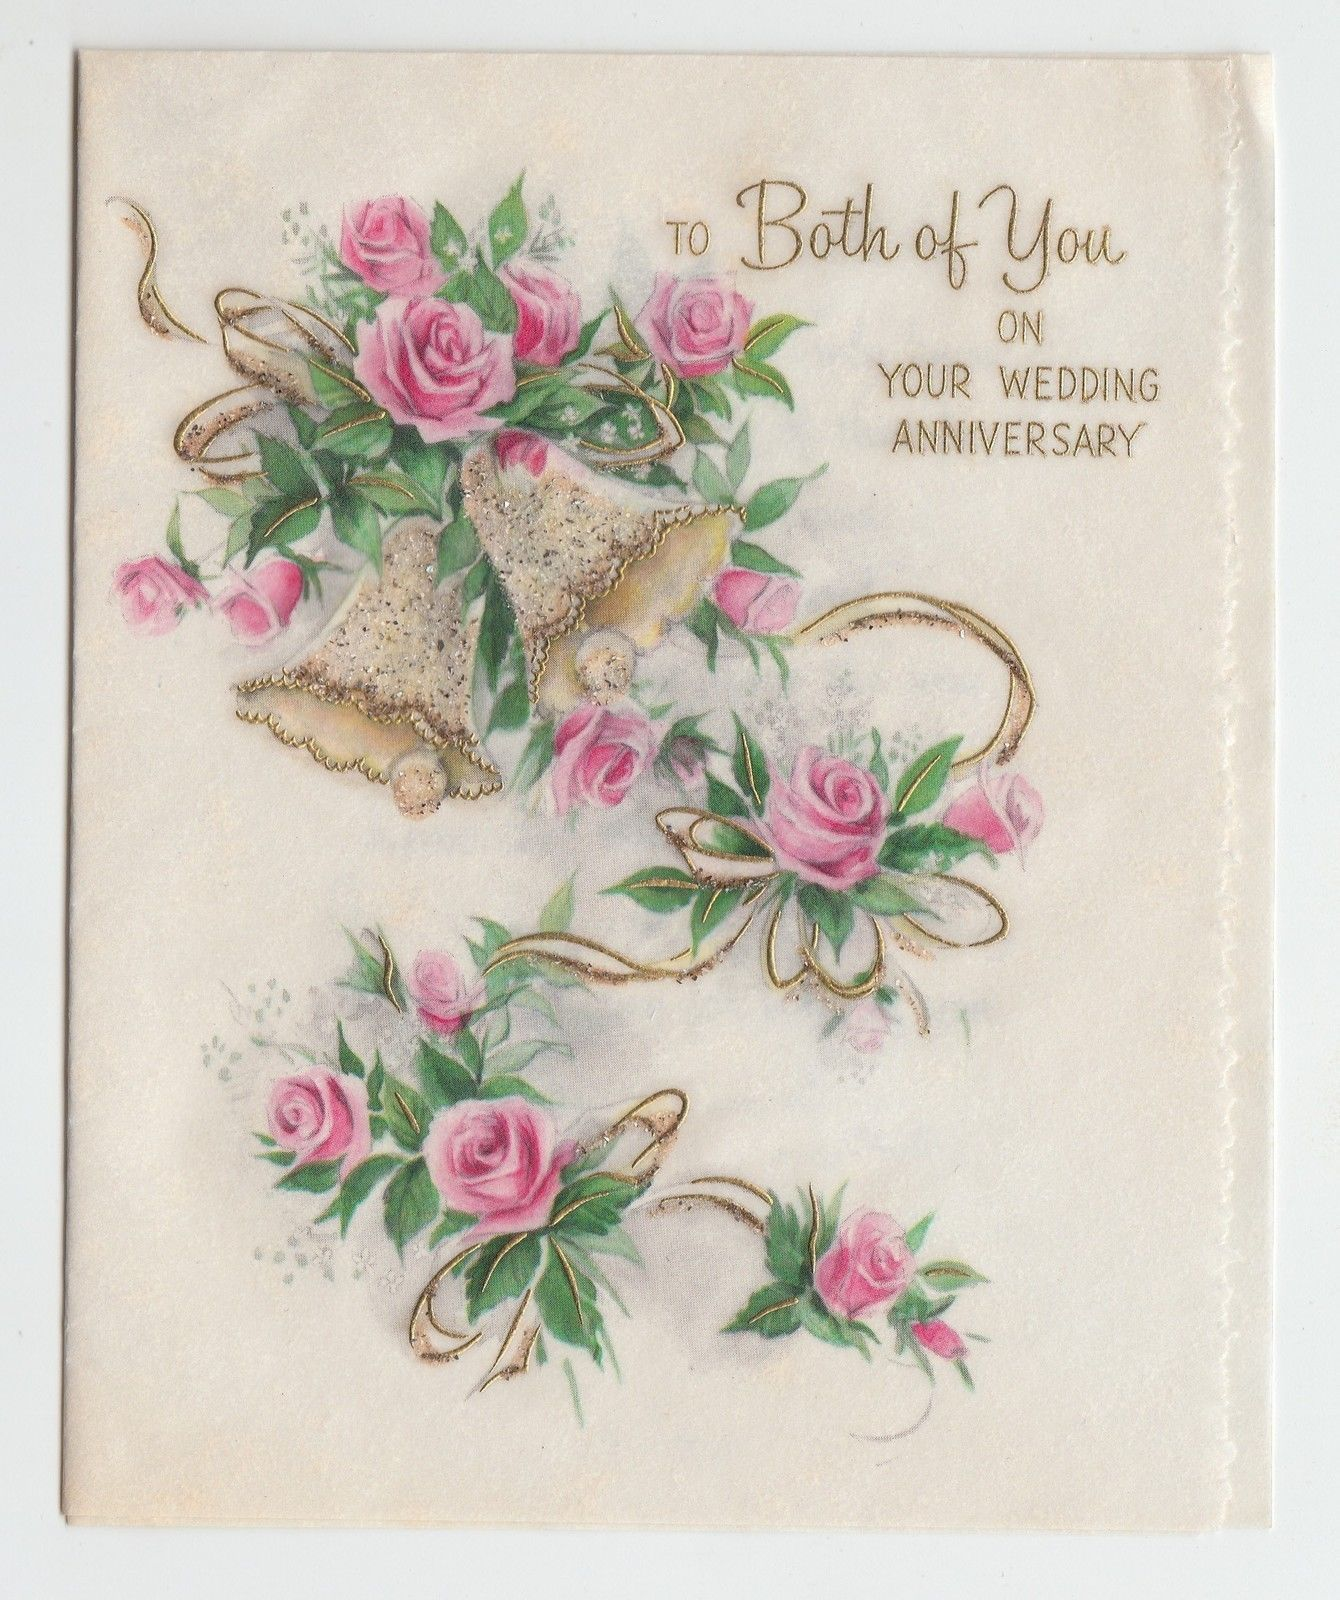 Vintage glitter bell and pink rose wedding anniversary